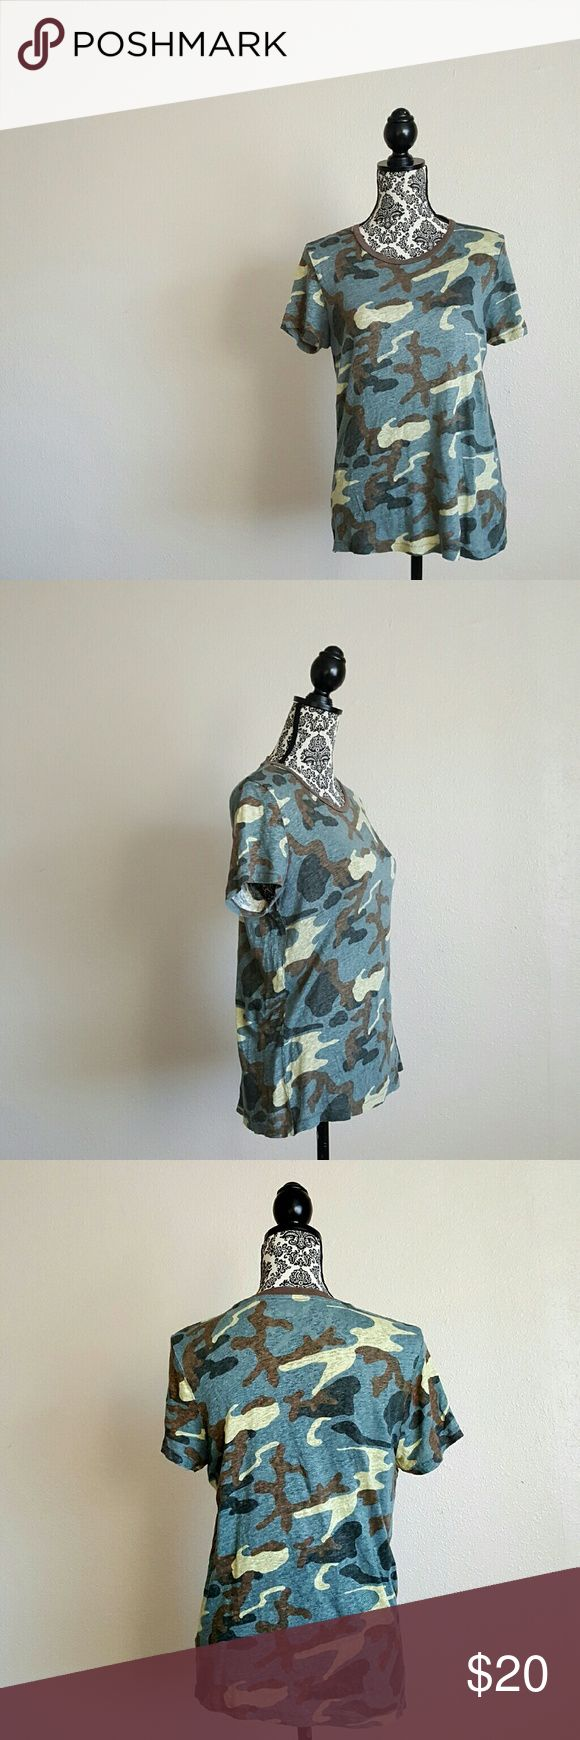 Madewell camo tee shirt 100% linen tee. Draped loose fit.  Measurement laying flat total length 25 1/2inches Measurement laying flat armpit to armpit 18inches Measurement laying flat shoulder to shoulder 15inches Madewell Tops Tees - Short Sleeve